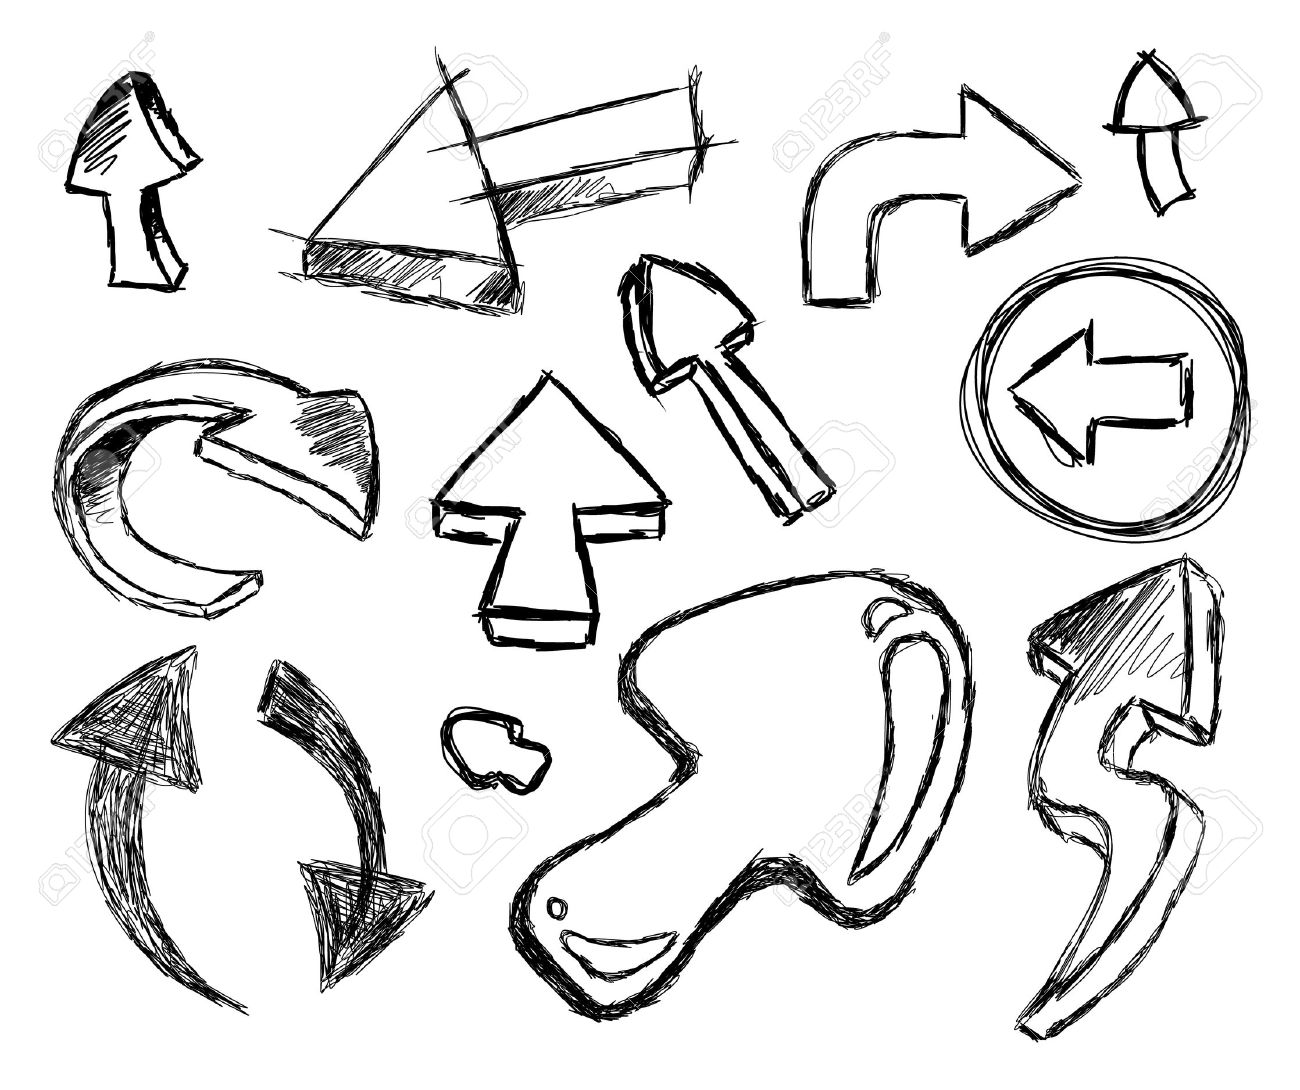 1300x1090 Funny 3d Style Collection Of Hand Made Sketch Arrows Royalty Free